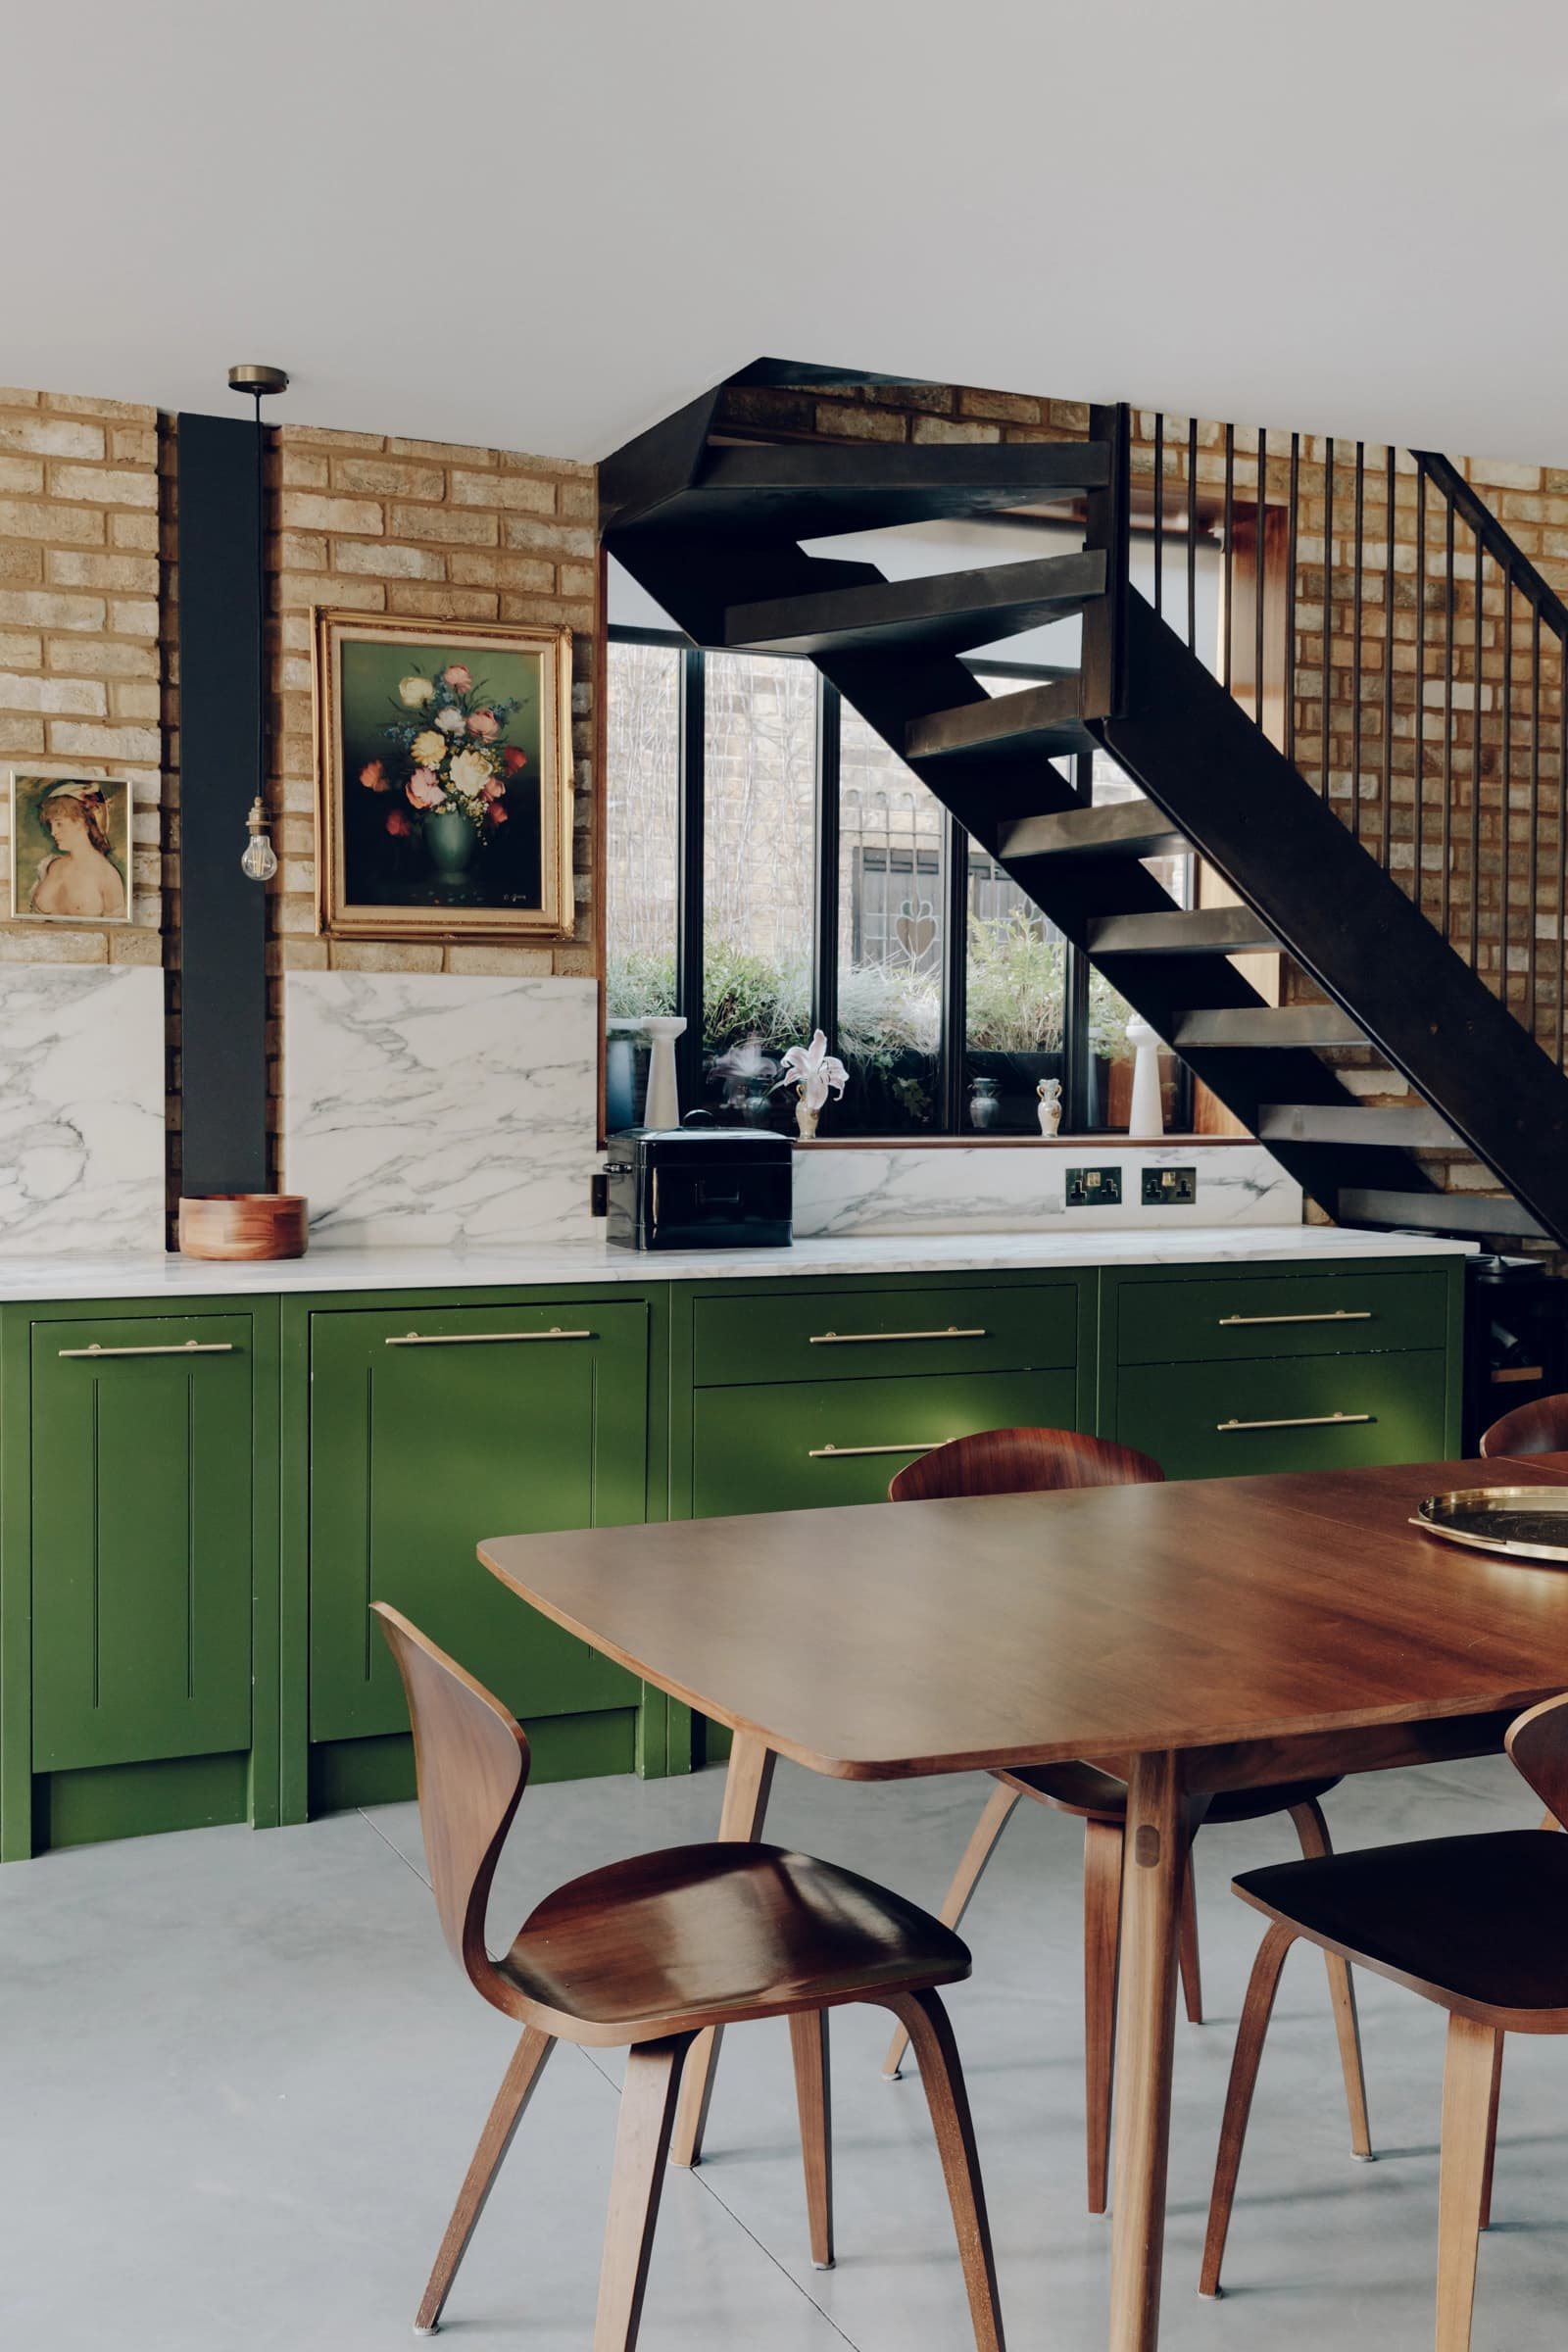 this is a contemporary and industrial kitchen with a green shade